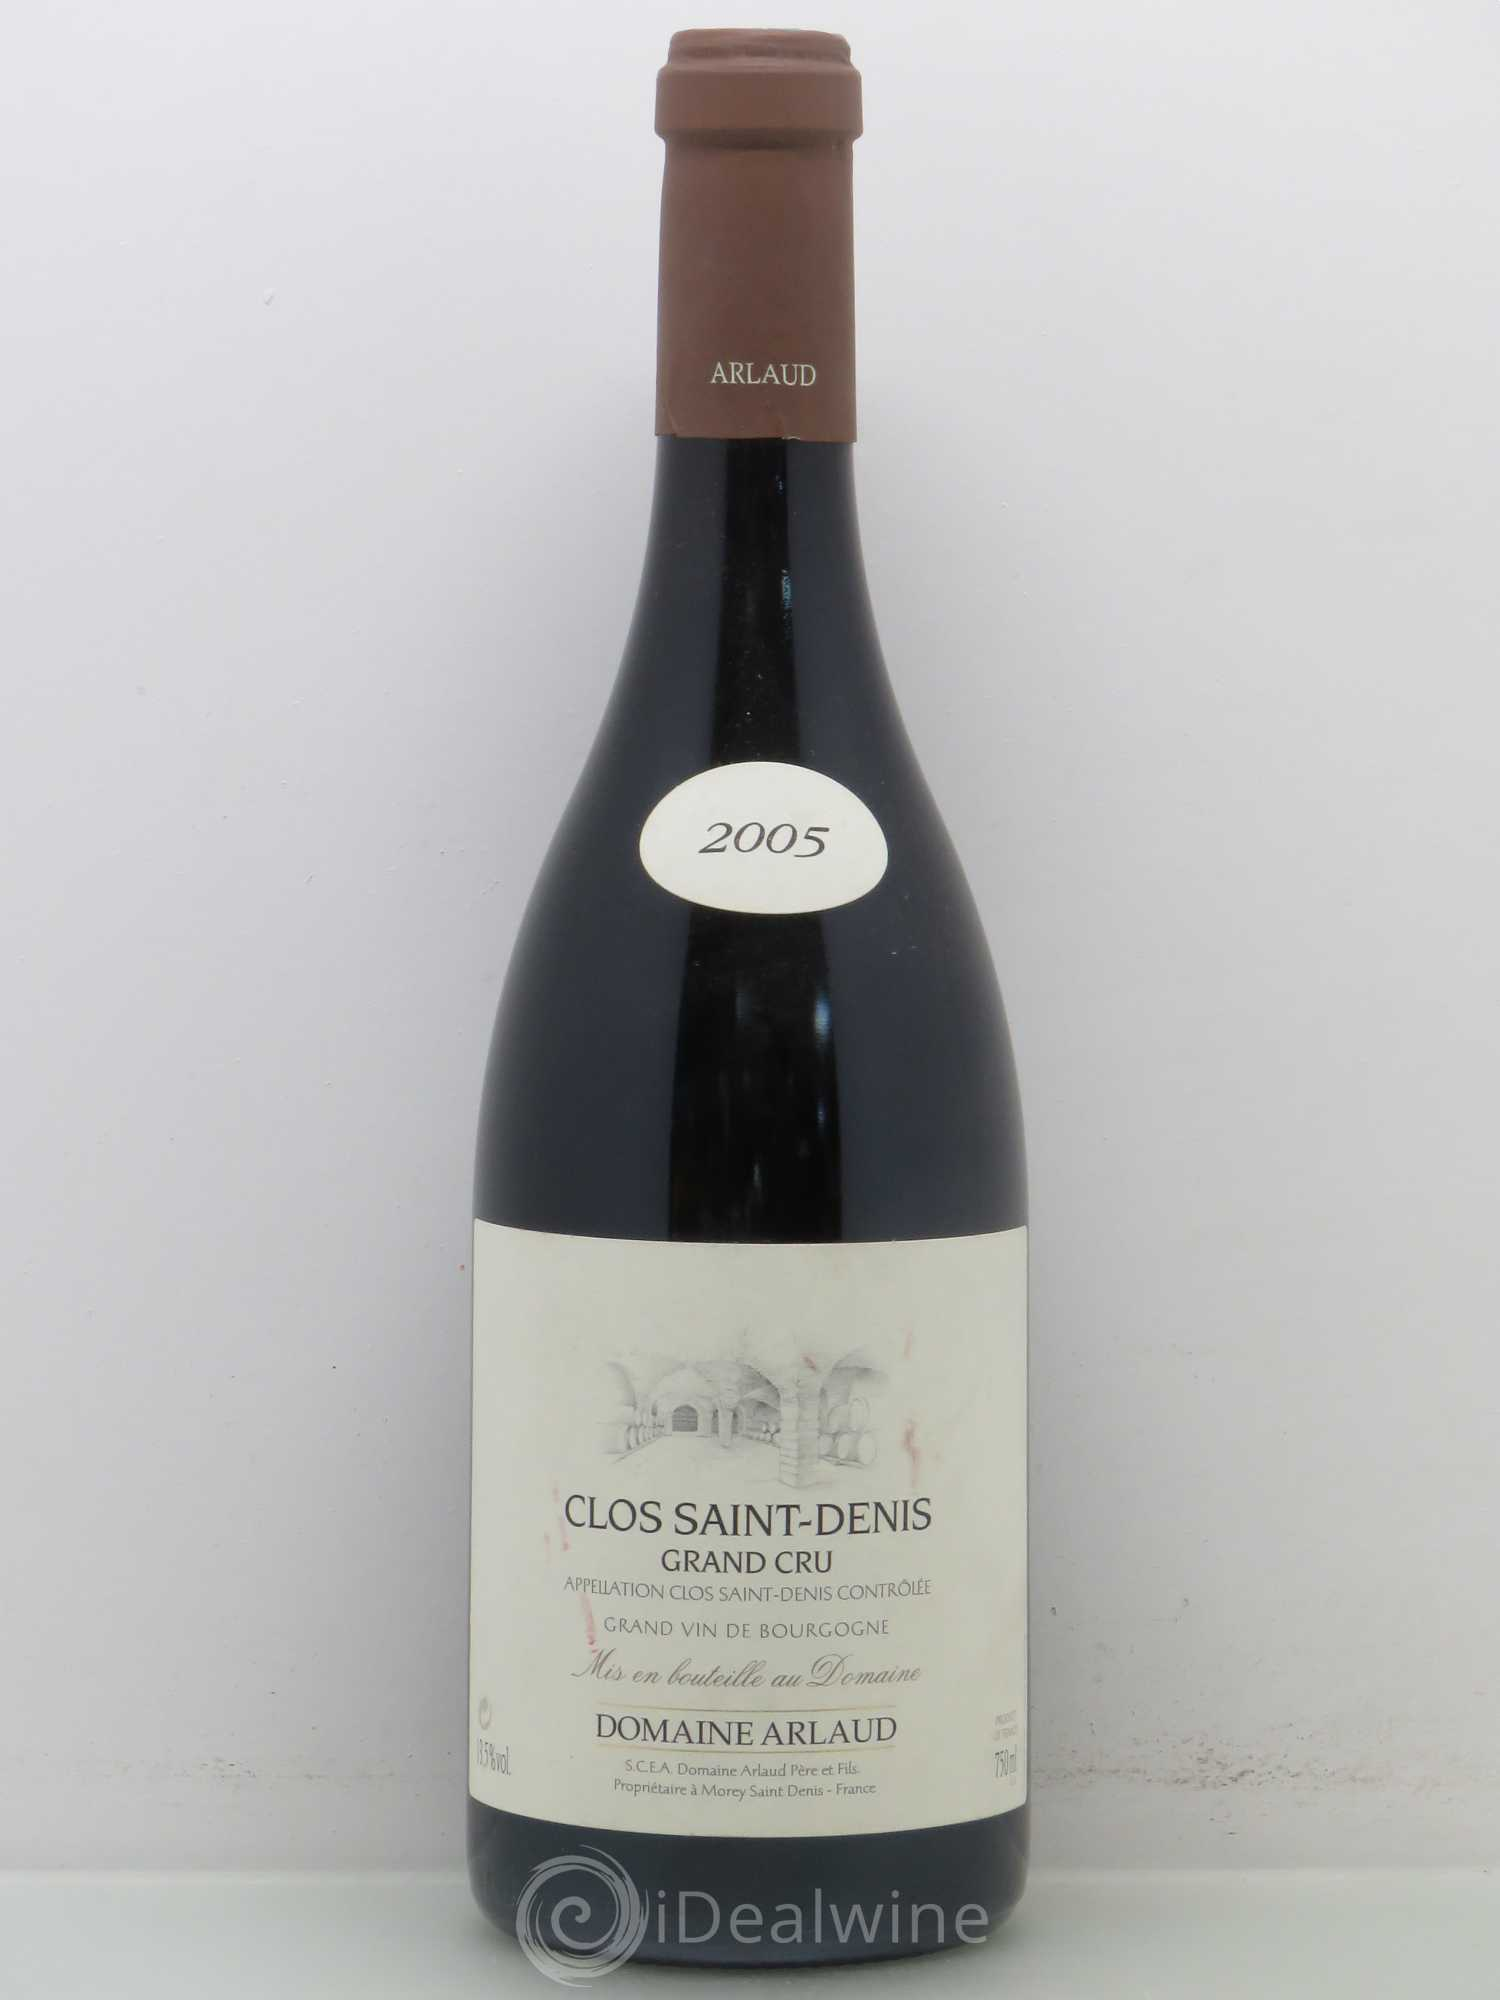 Clos Saint-Denis Grand Cru Arlaud 2005 - Lot de 1 Bouteille